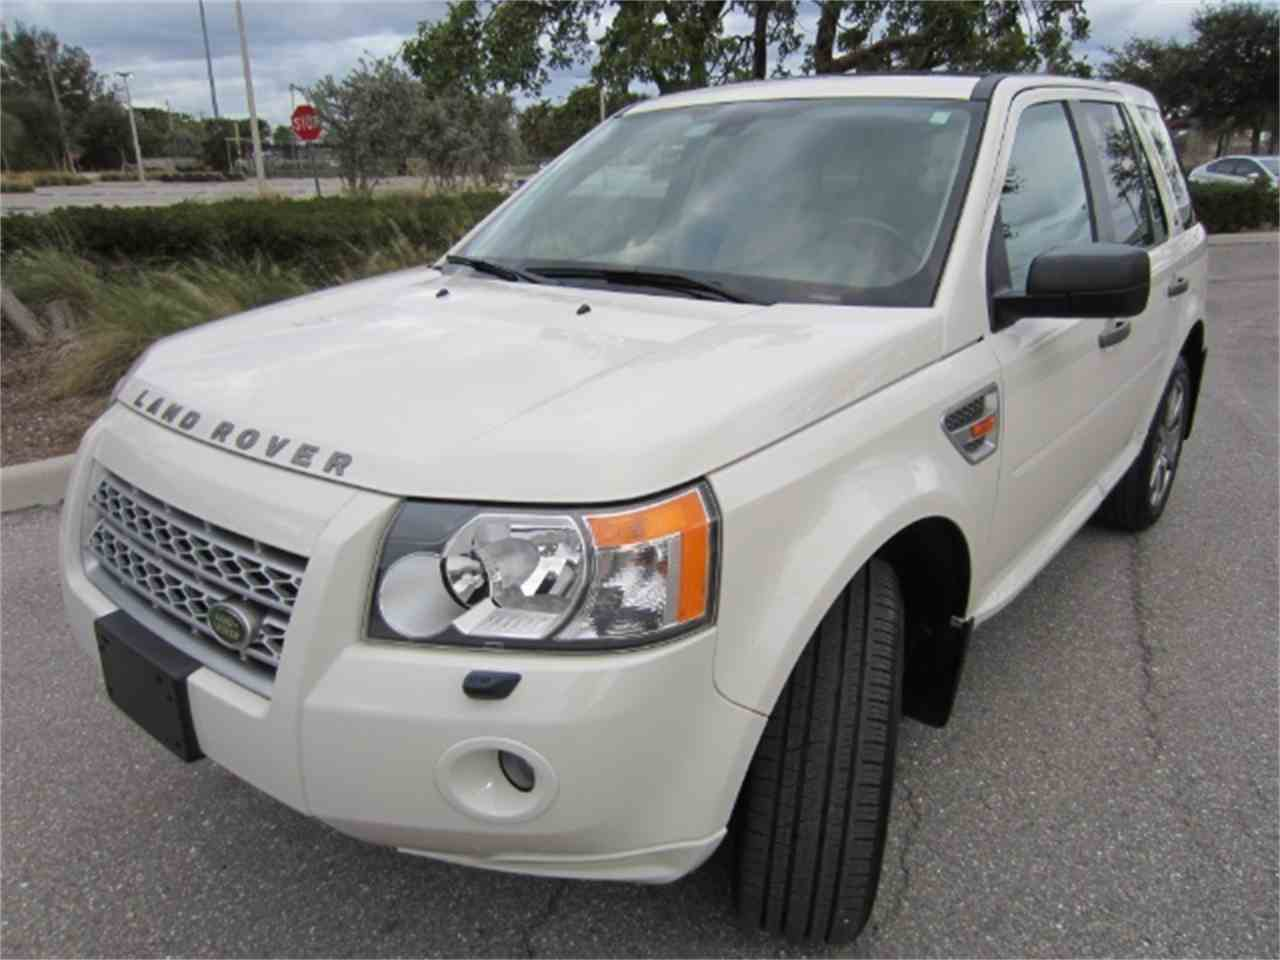 copart on salvage dallas rover title hse auctions in view carfinder online for fedd right auto tx lot red land vehicle en sale landrover te